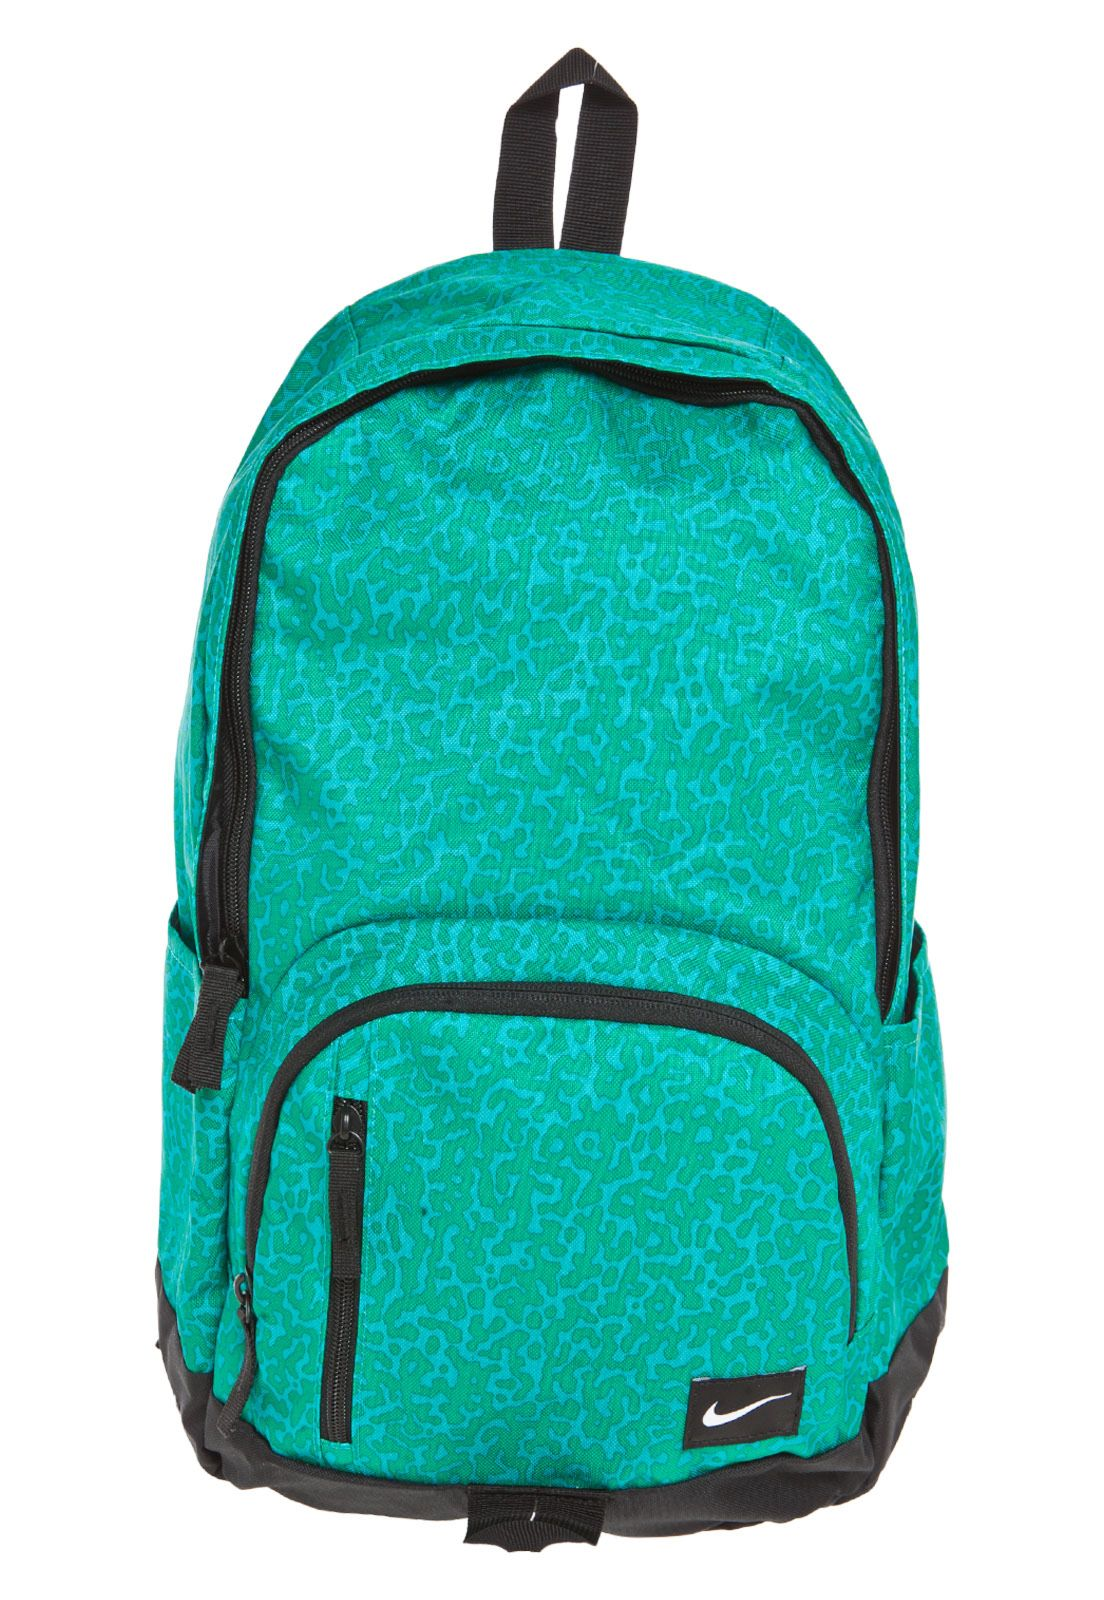 Soleday University Nike Access Mochila Verde All Sportswear OqBwAI0